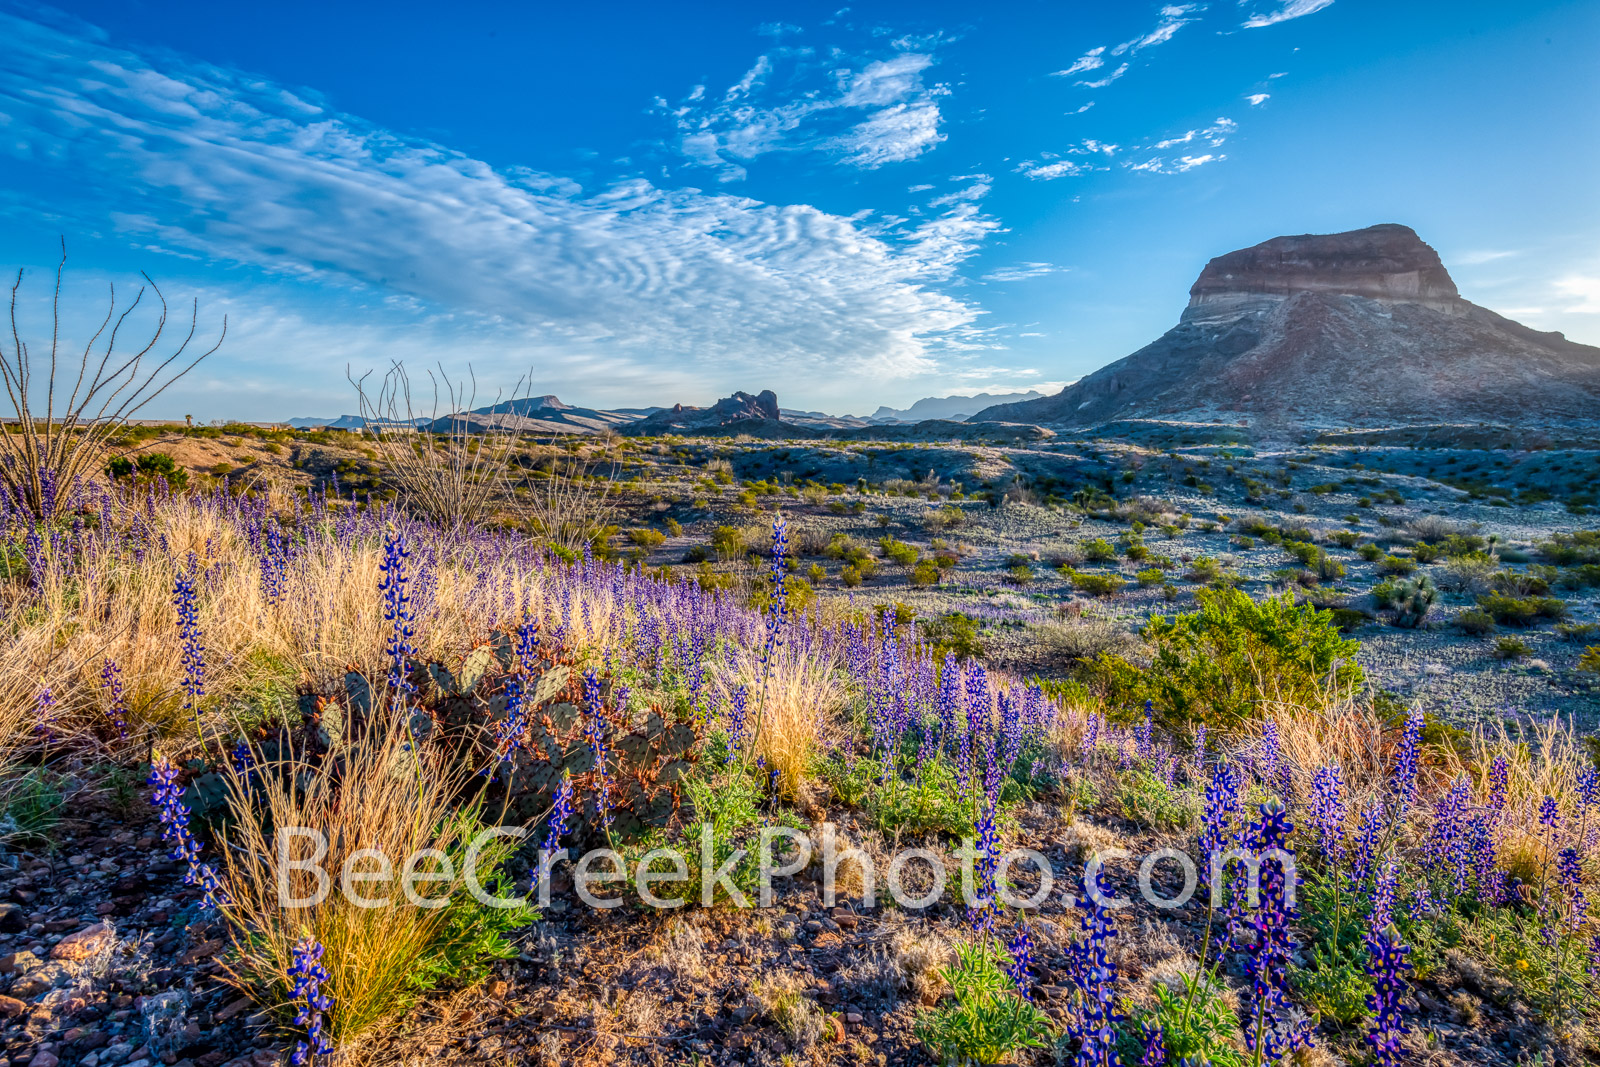 Chiso Bluebonnets - The early morning sun kisses the bluebonnets on the side of this sloping hill side in Big Bend with the distant...